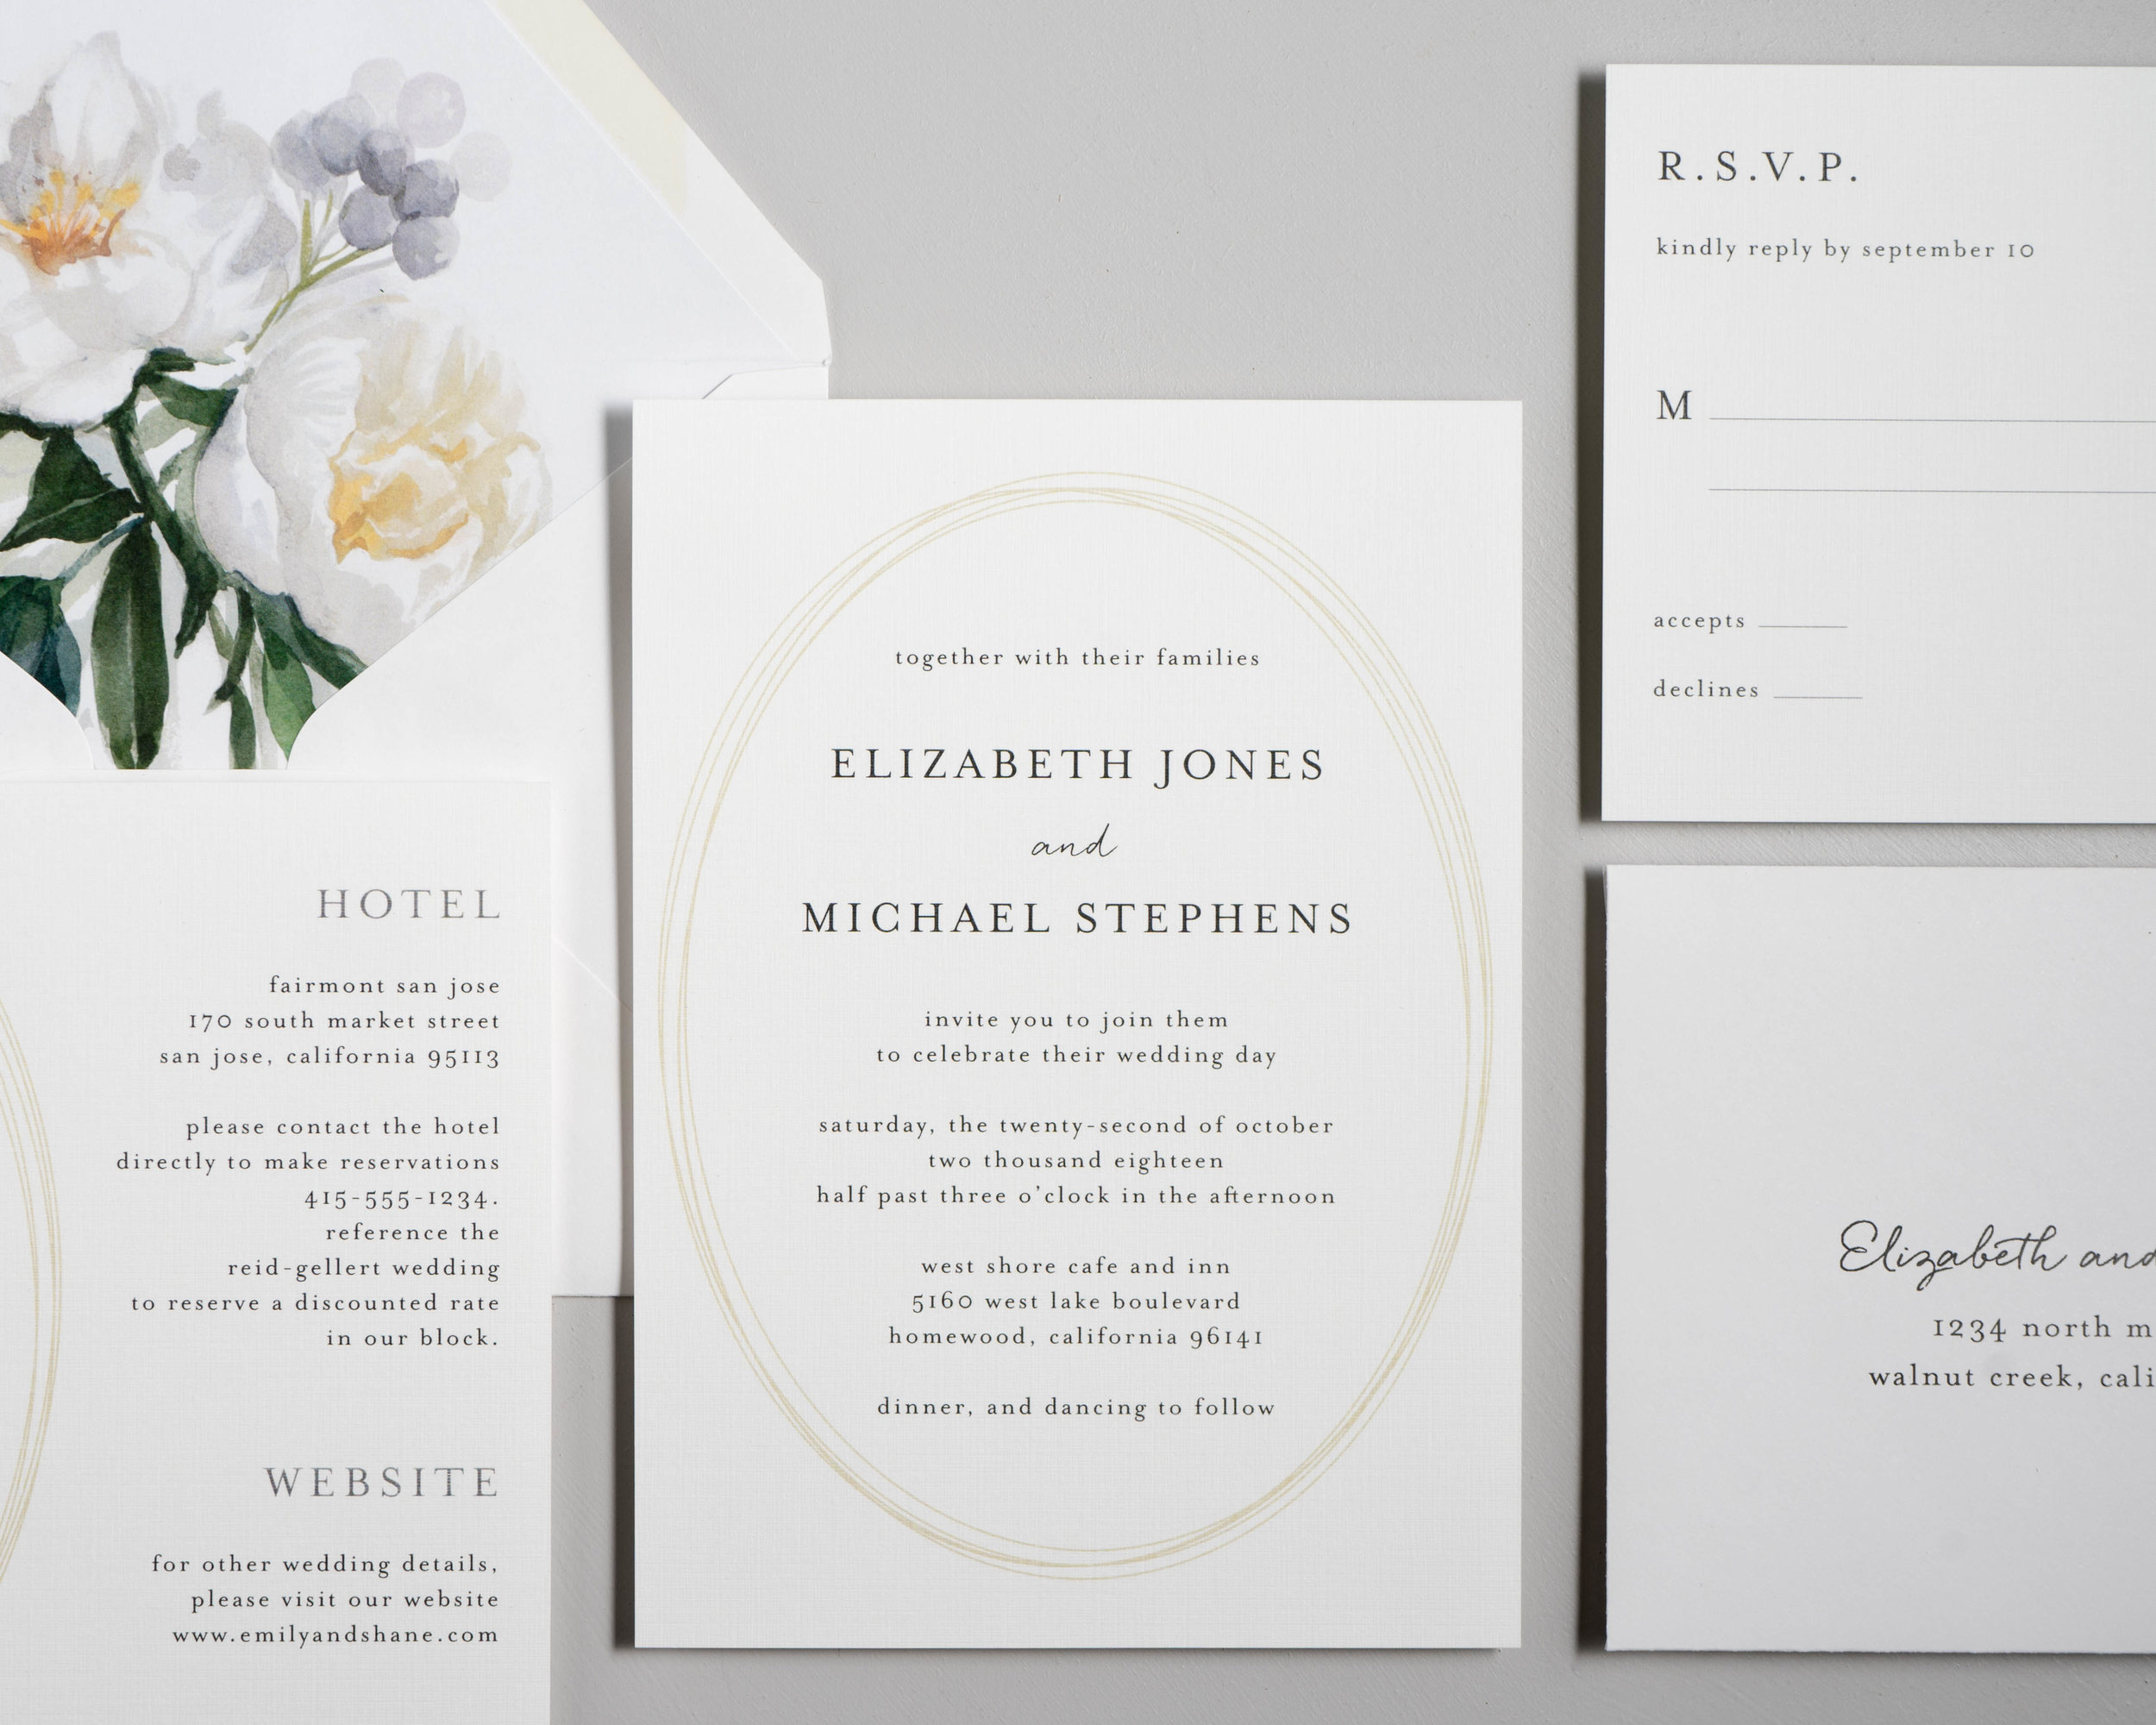 Modern Oval and White Peony Wedding Invitation by Just Jurf-3.jpg